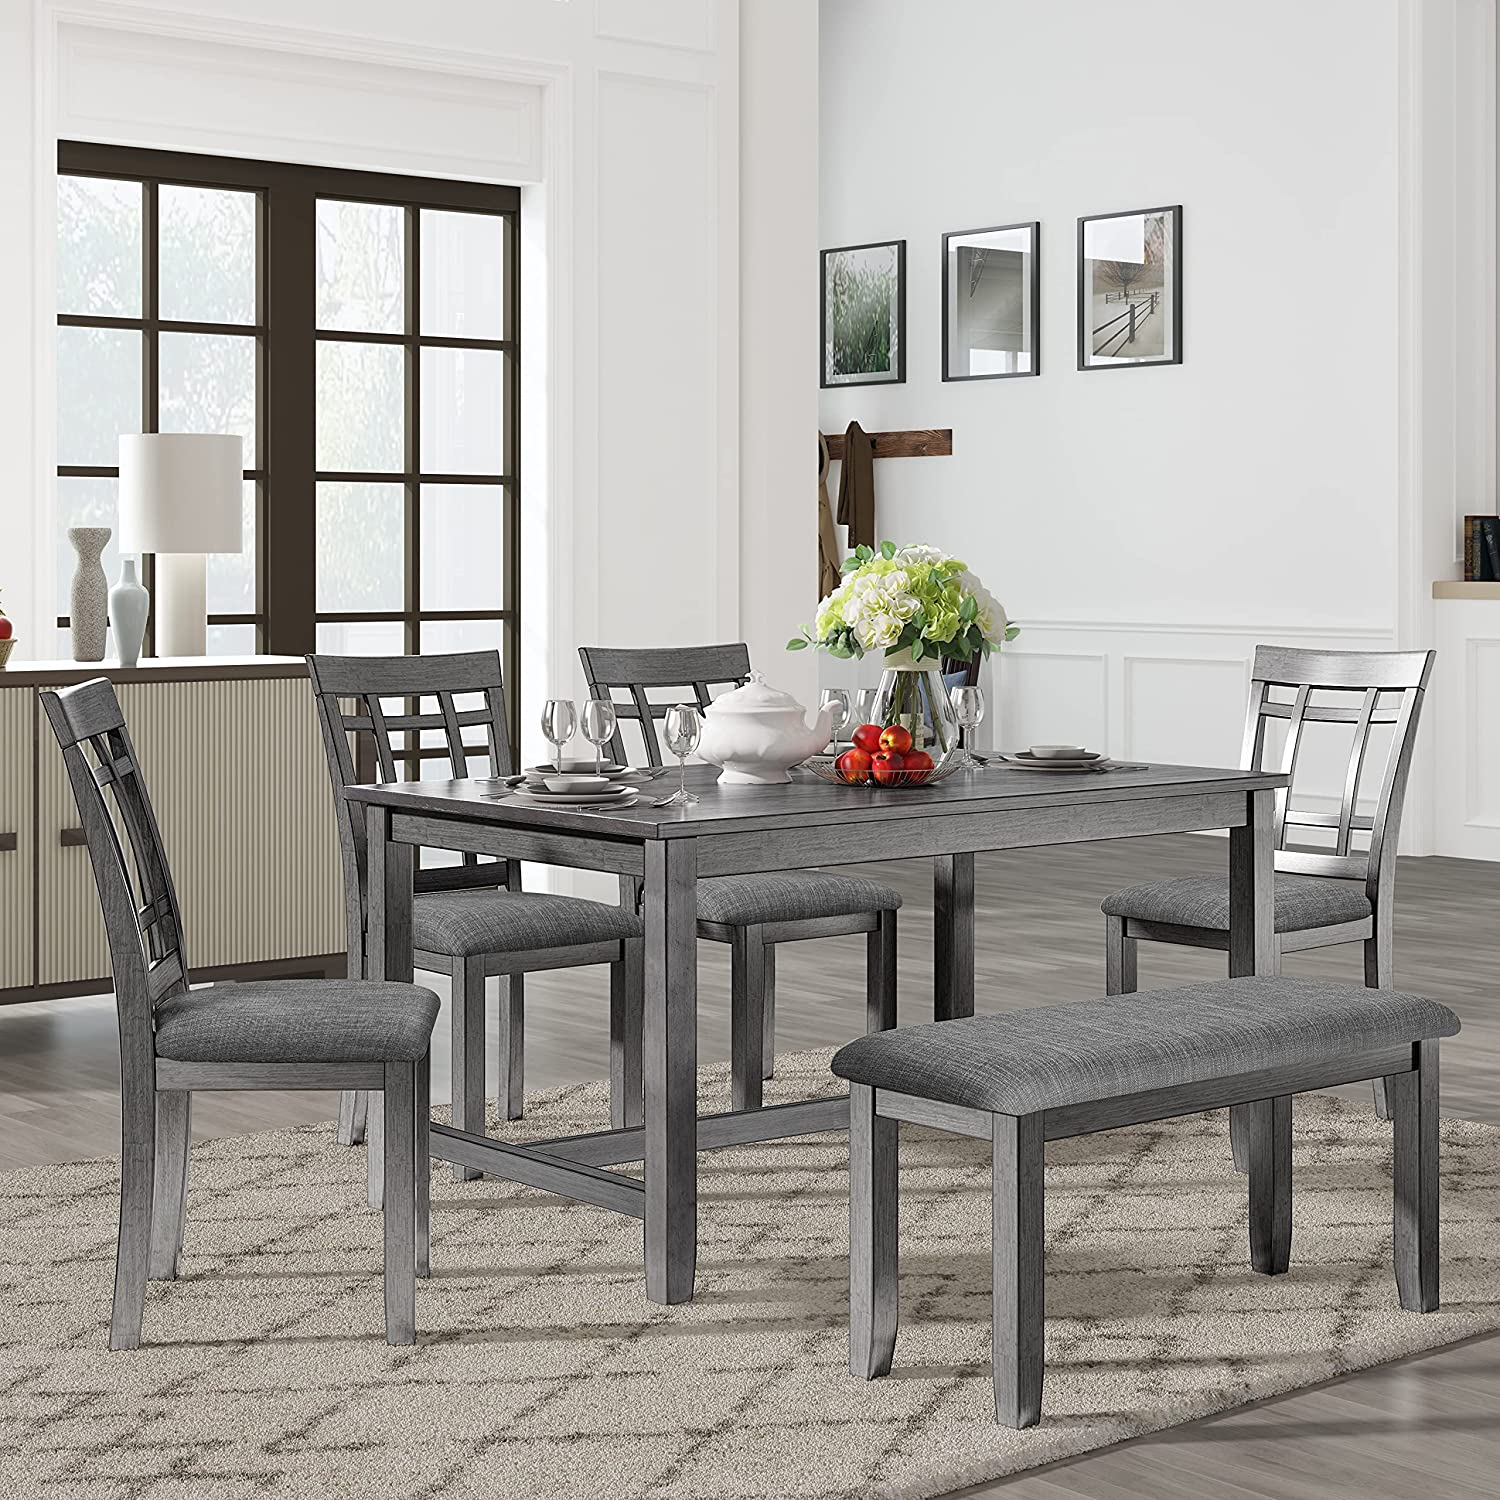 Merax Dining Max 87% OFF Table Excellent Sets 6-Piece Wood Kitchen